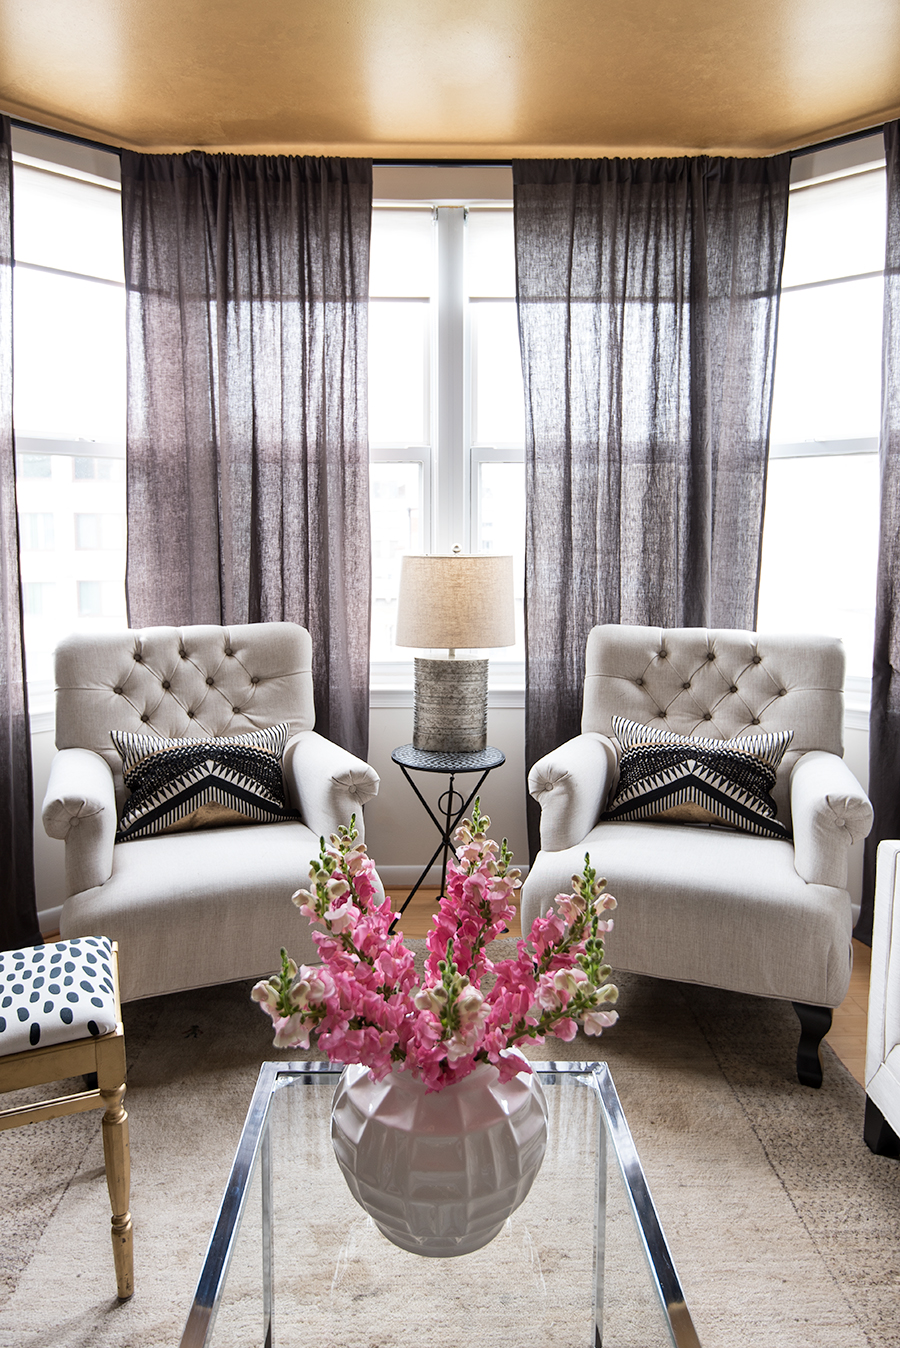 bay-windows-seating-area-dc-apartment-washington-dc-splendor-styling-mariella-cruzado.jpg